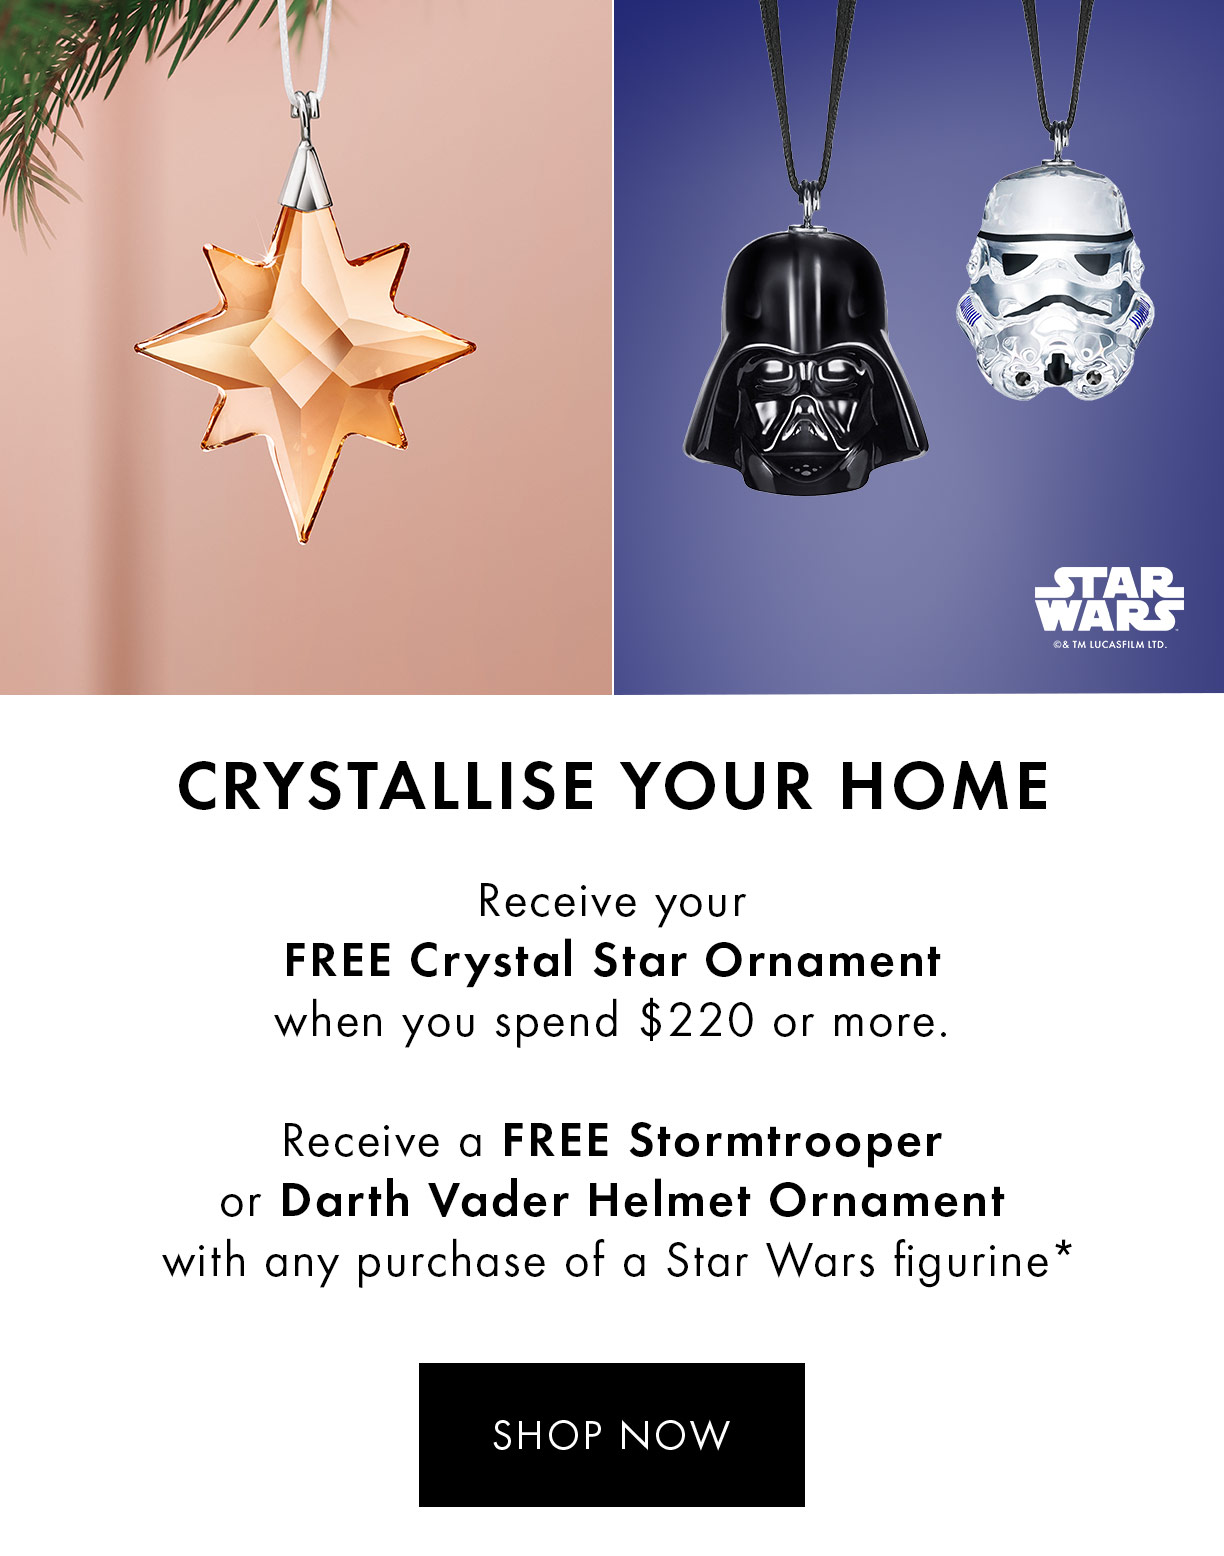 Crystallise your home